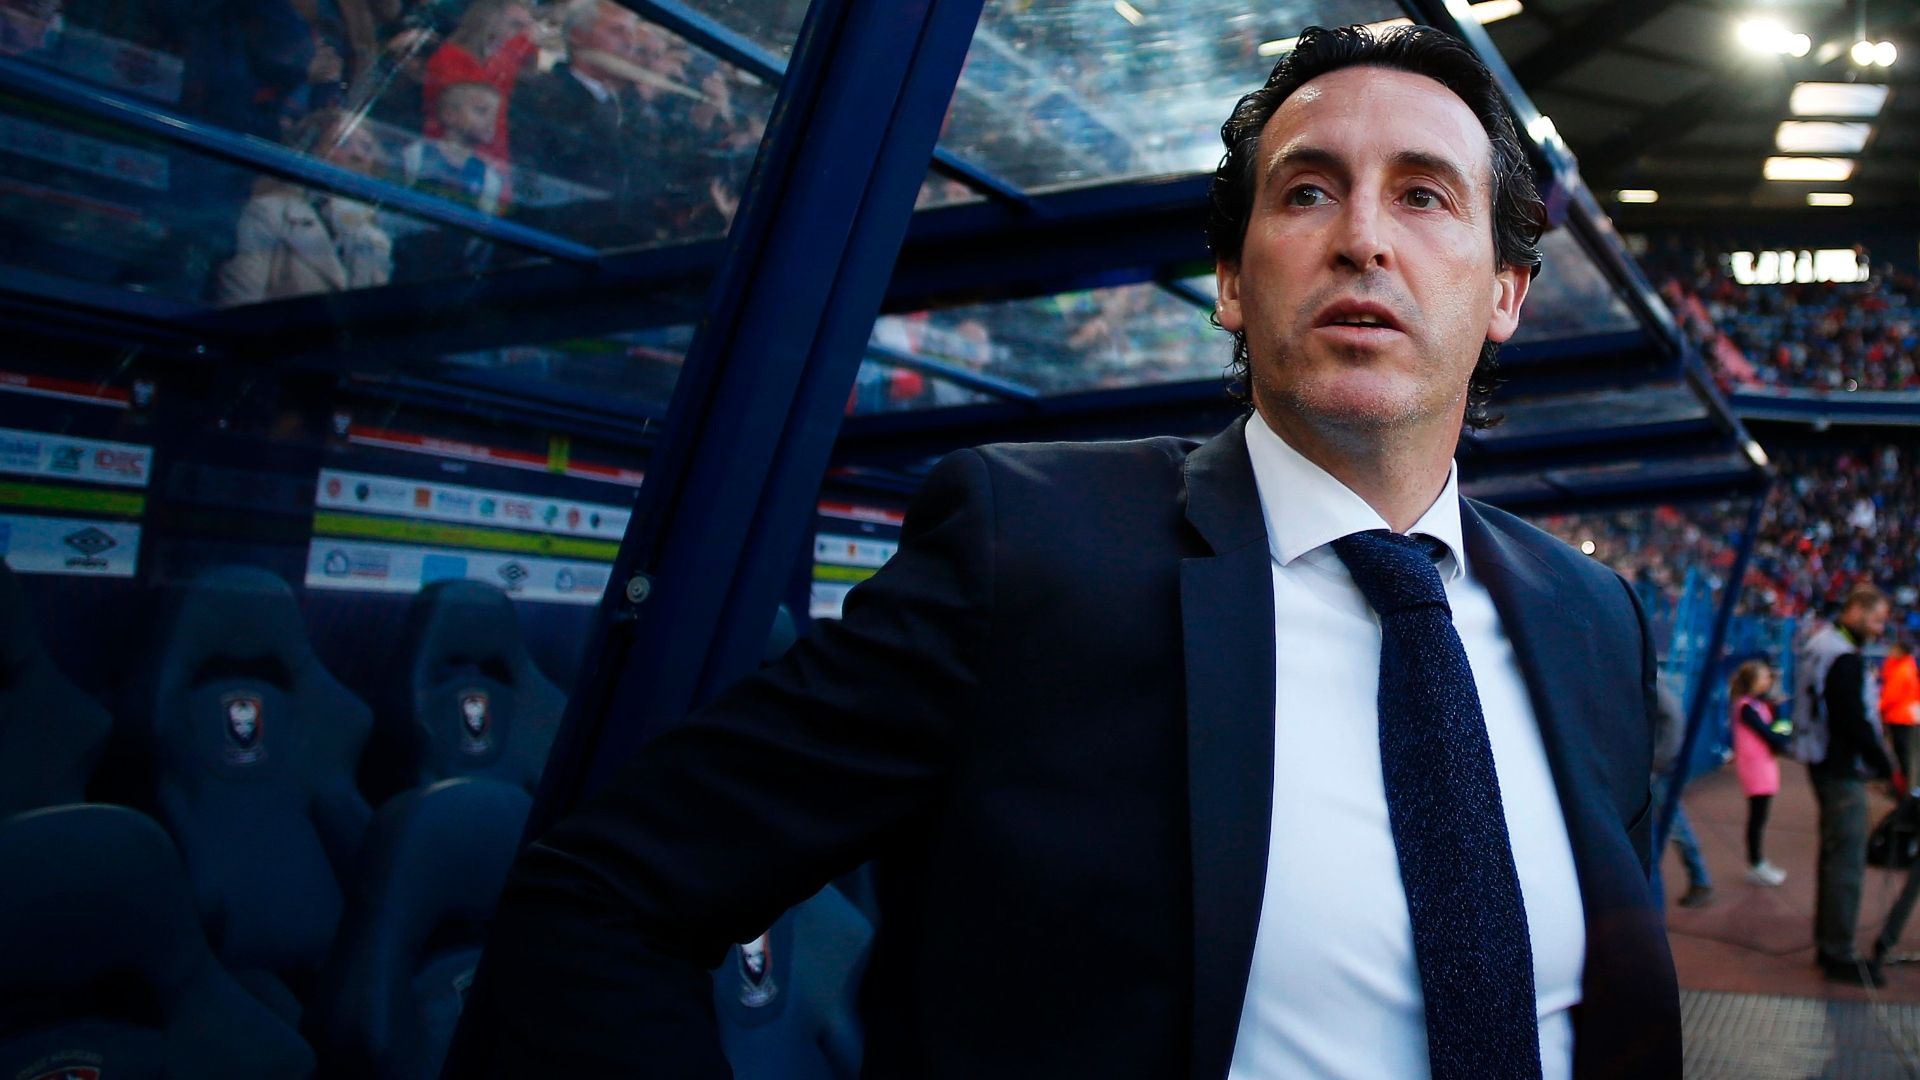 Arsenal appoint Emery to replace Wenger